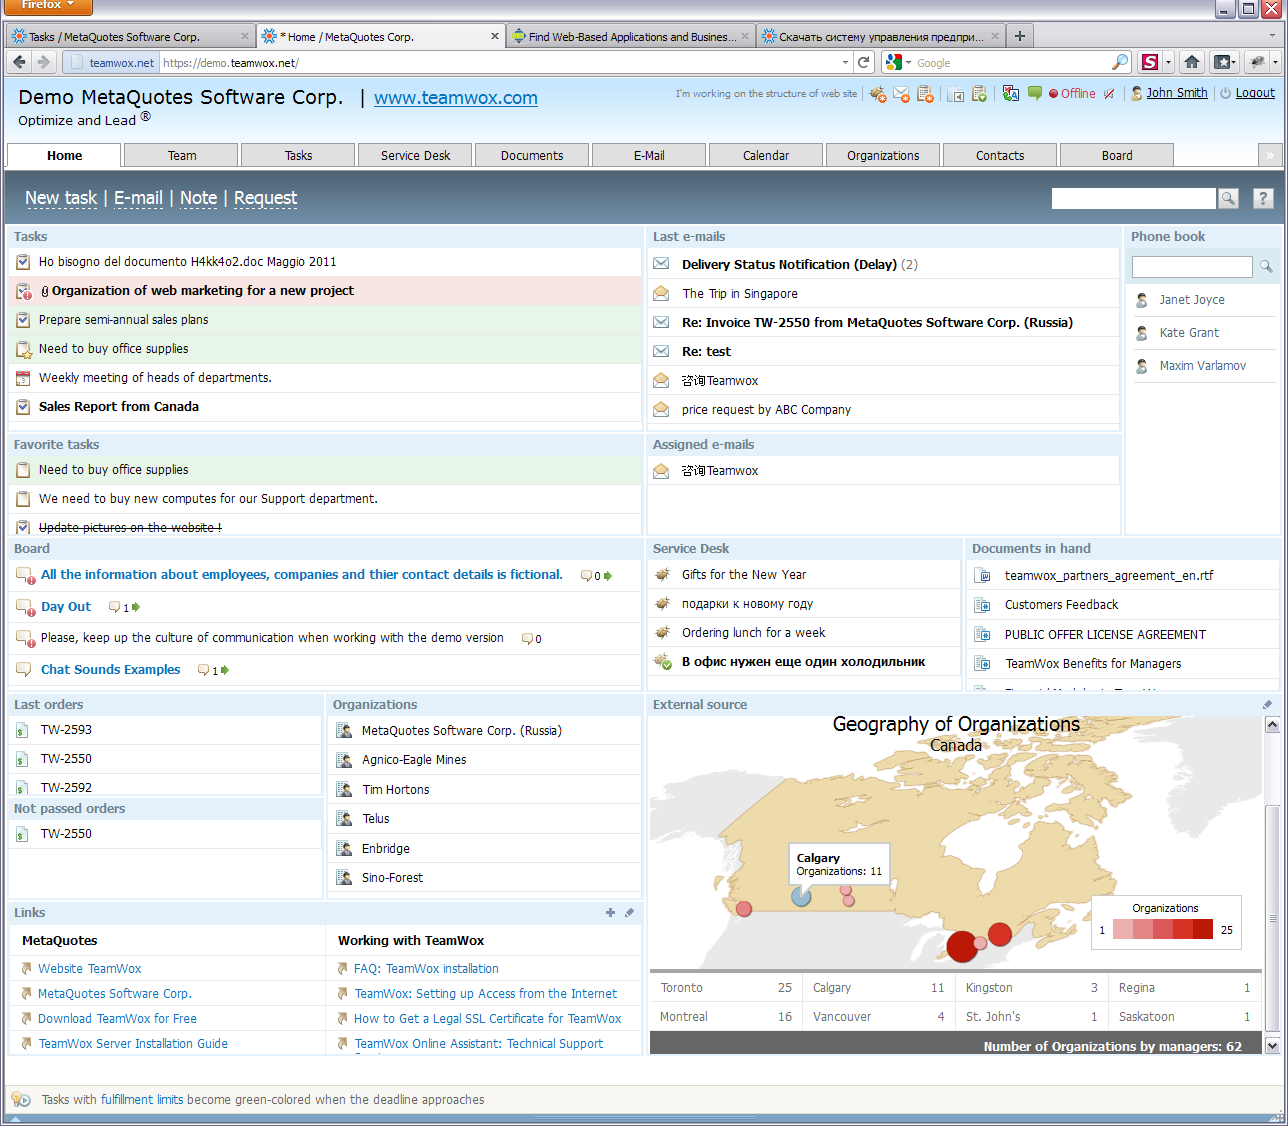 Home Page of the collaboration software